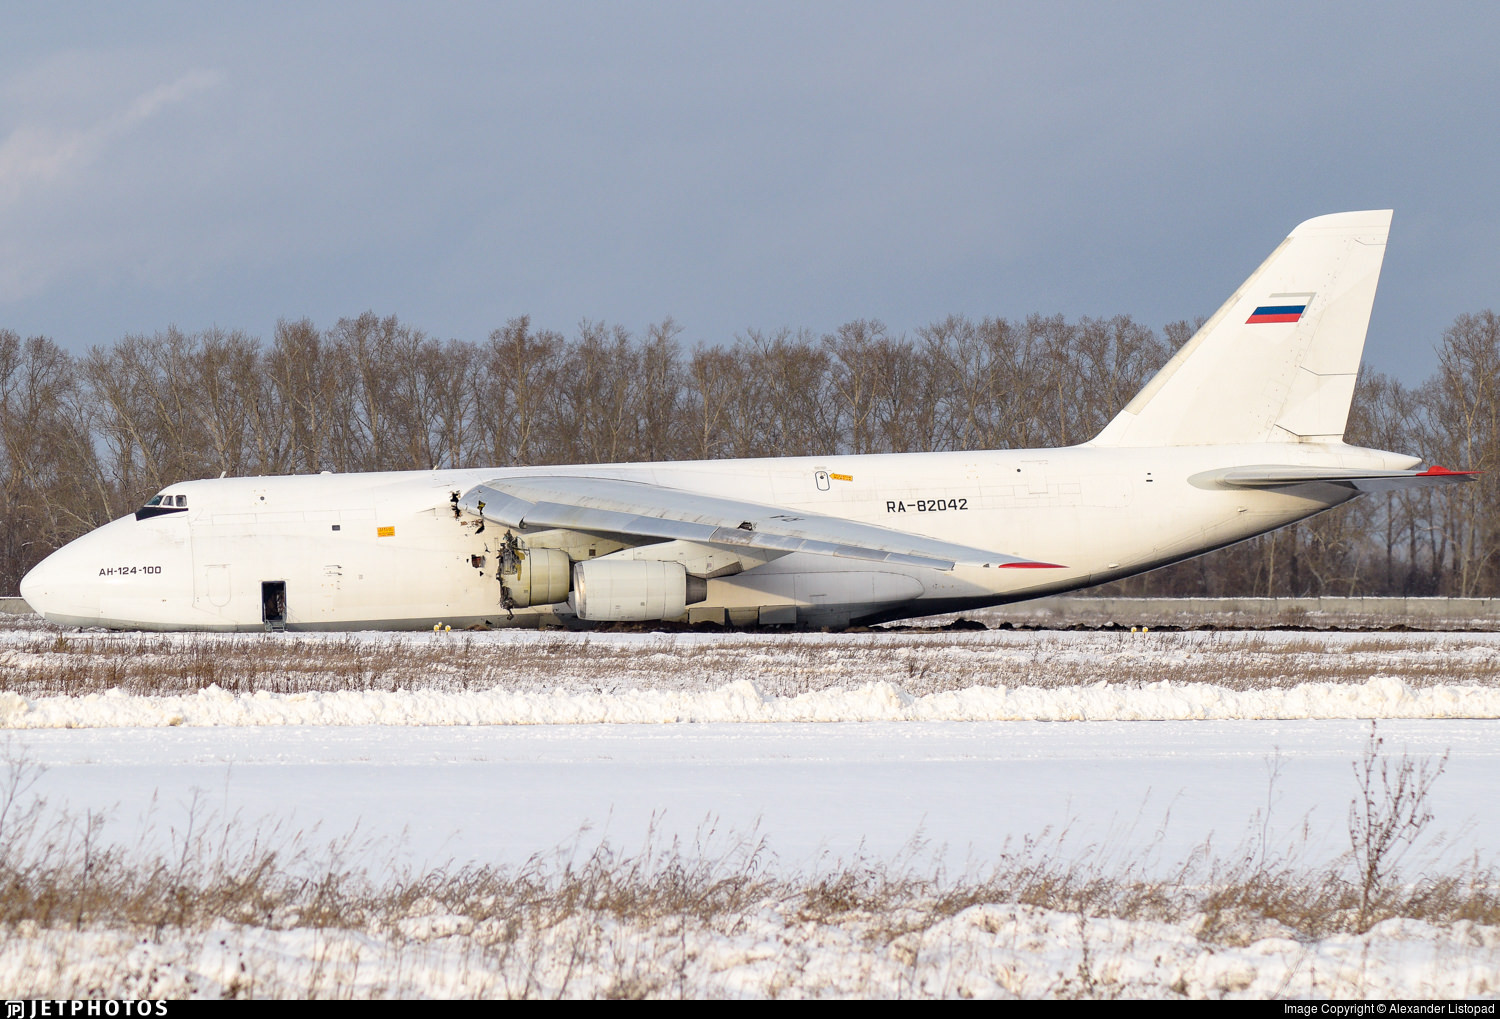 Volga Dnepr An124 after engine failure and runway excursion